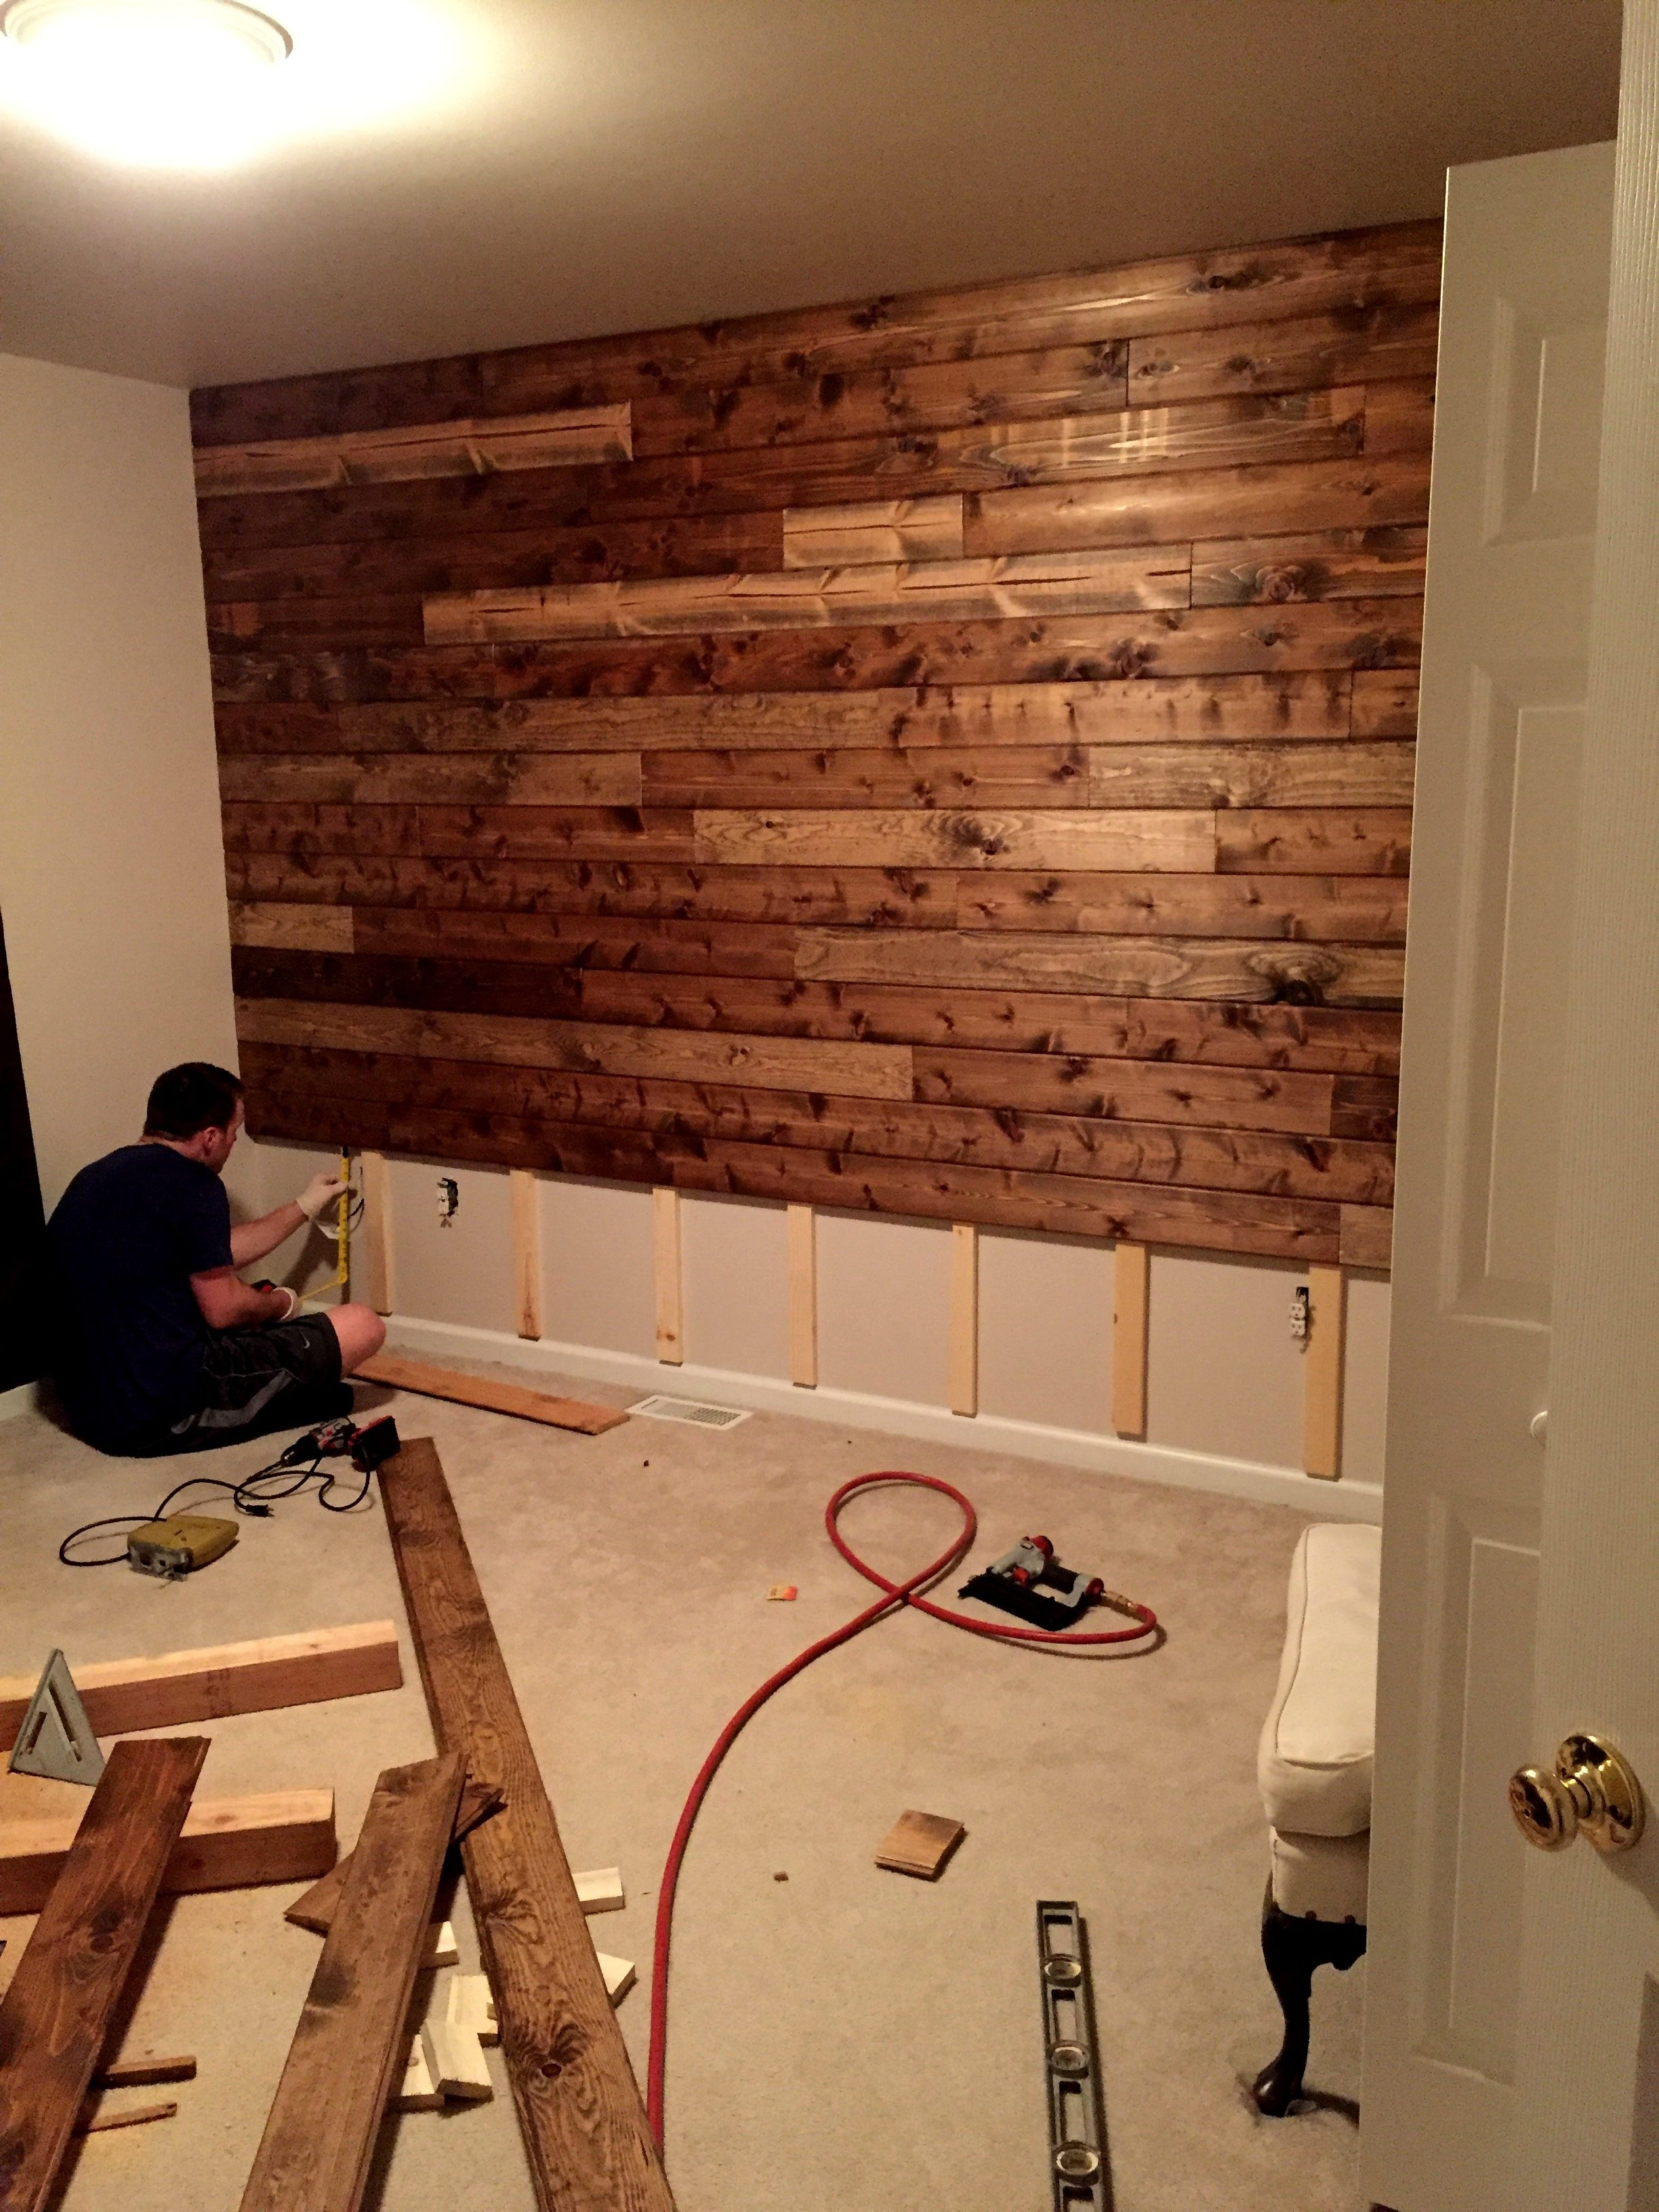 Wooden Accent Wall Tutorial | Country Decor | Pinterest Within 2018 Rustic Wall Accents (View 15 of 15)